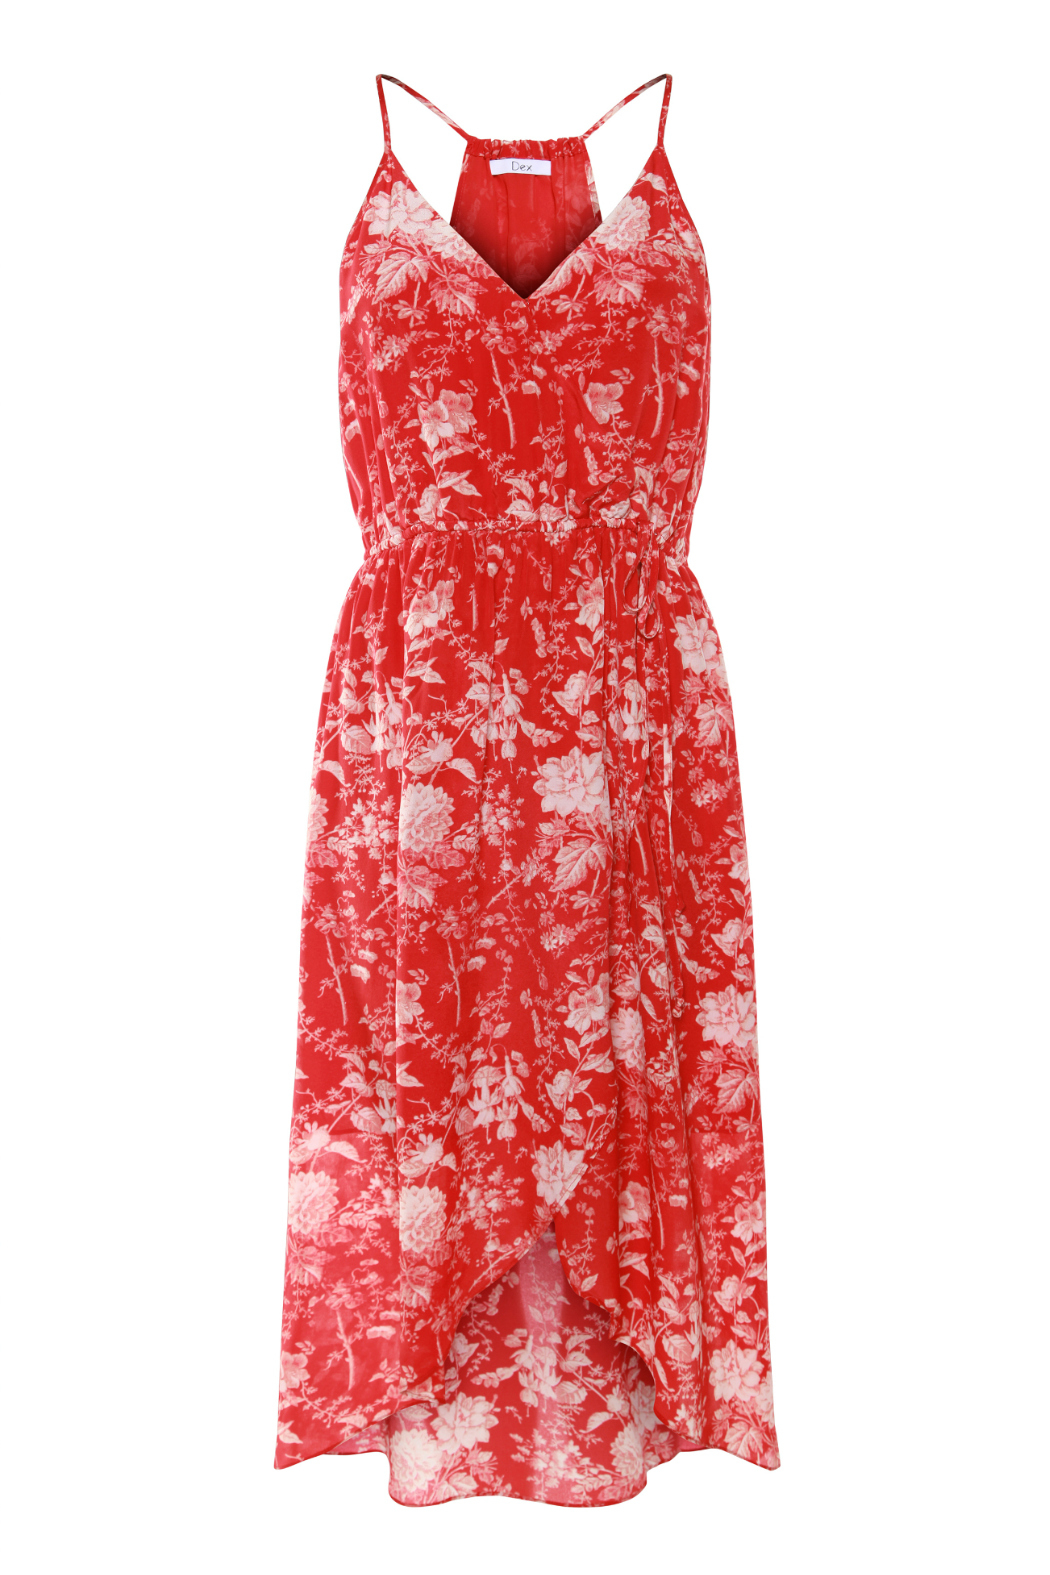 Dex Floral Print Halter Faux Wrap Dress - Main Image